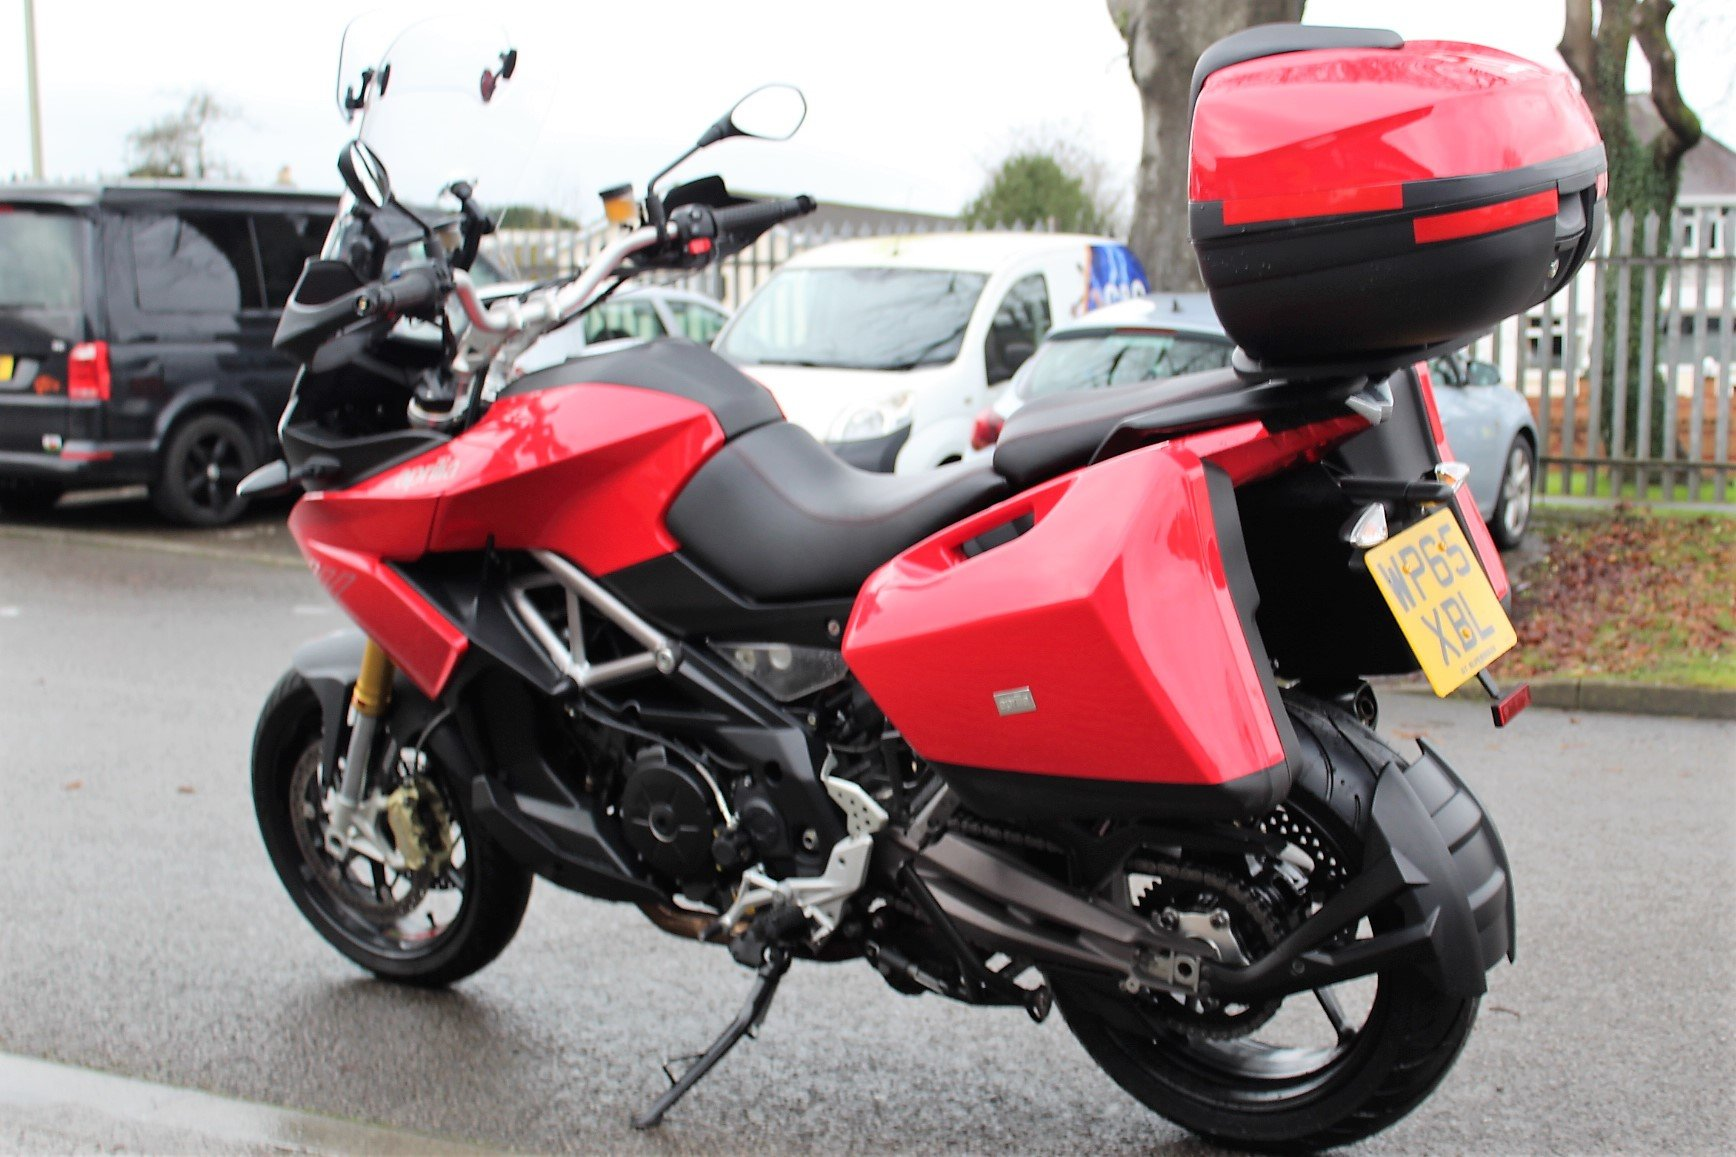 2015 65 Aprilia Caponord 1200 ABS Adventure Tourer For Sale (picture 5 of 12)